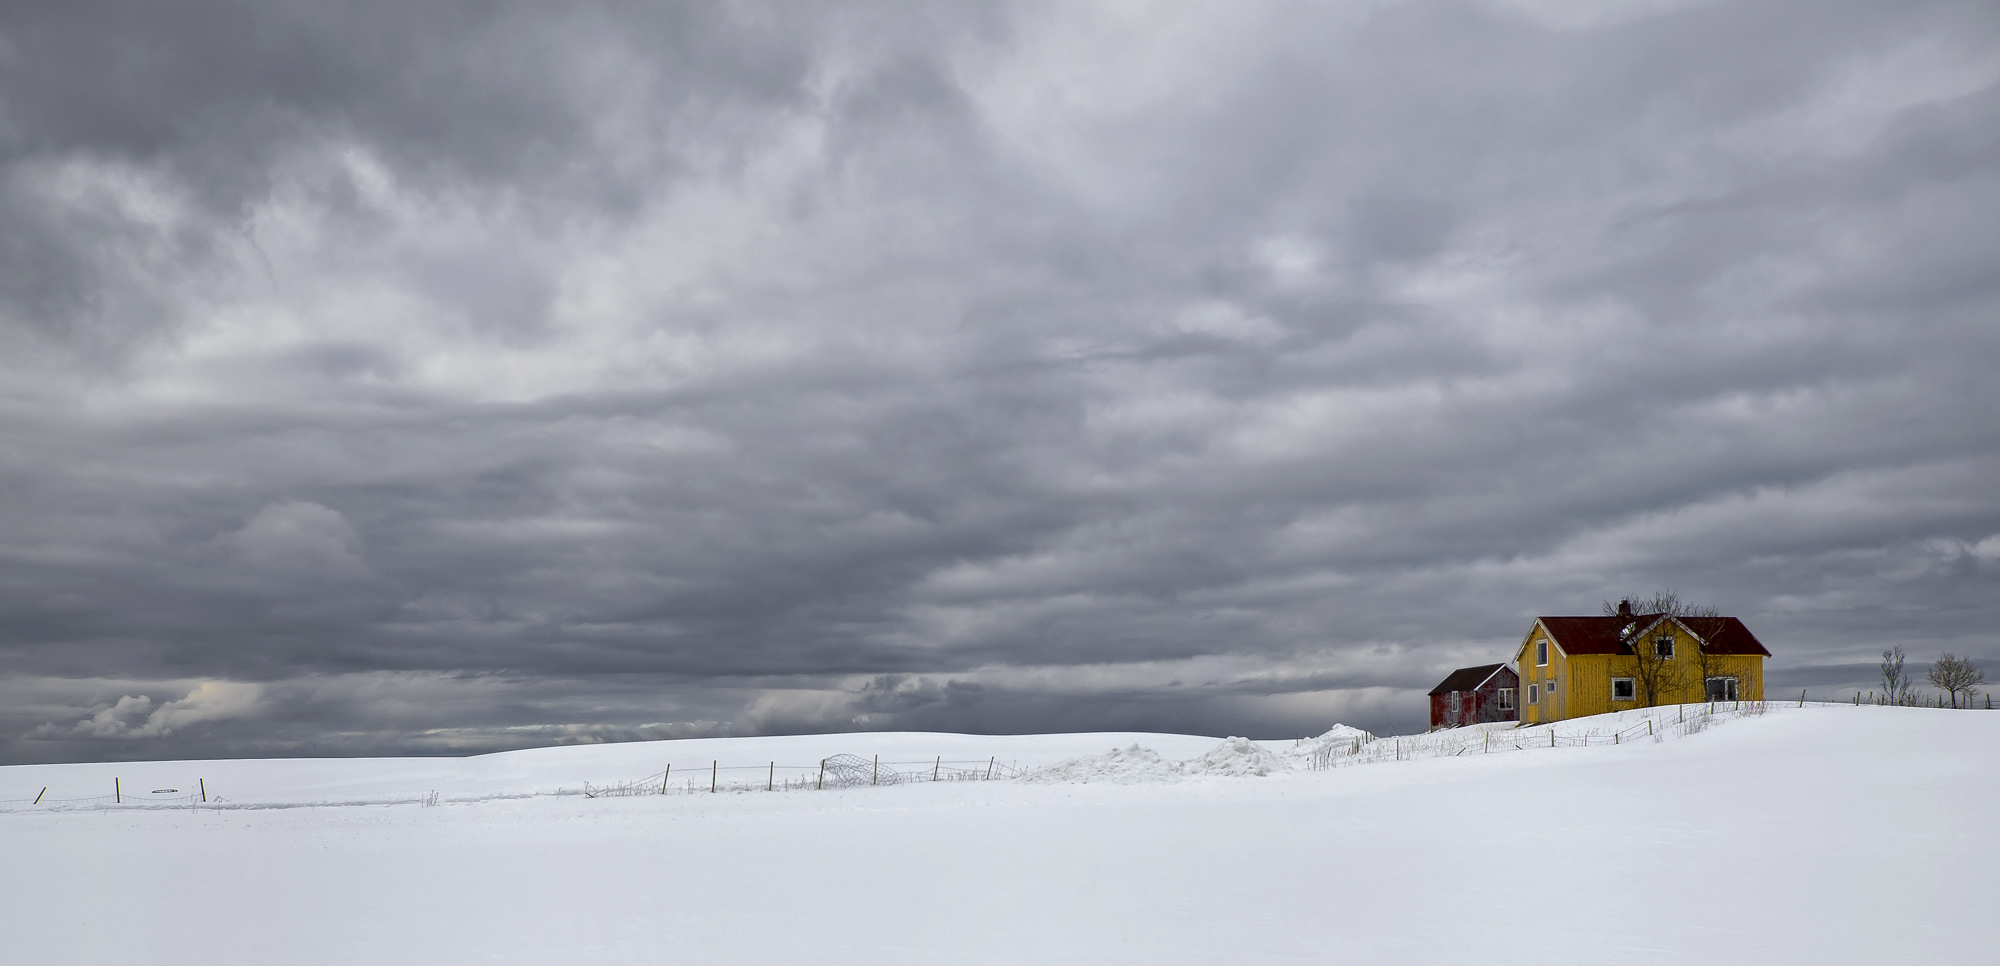 Mustard House Pano, limited colour, drama, fenced, fields, beach, turbulent, storm, snow, rorbrua, red, mustard, house, wooden, isolated, winter , photo